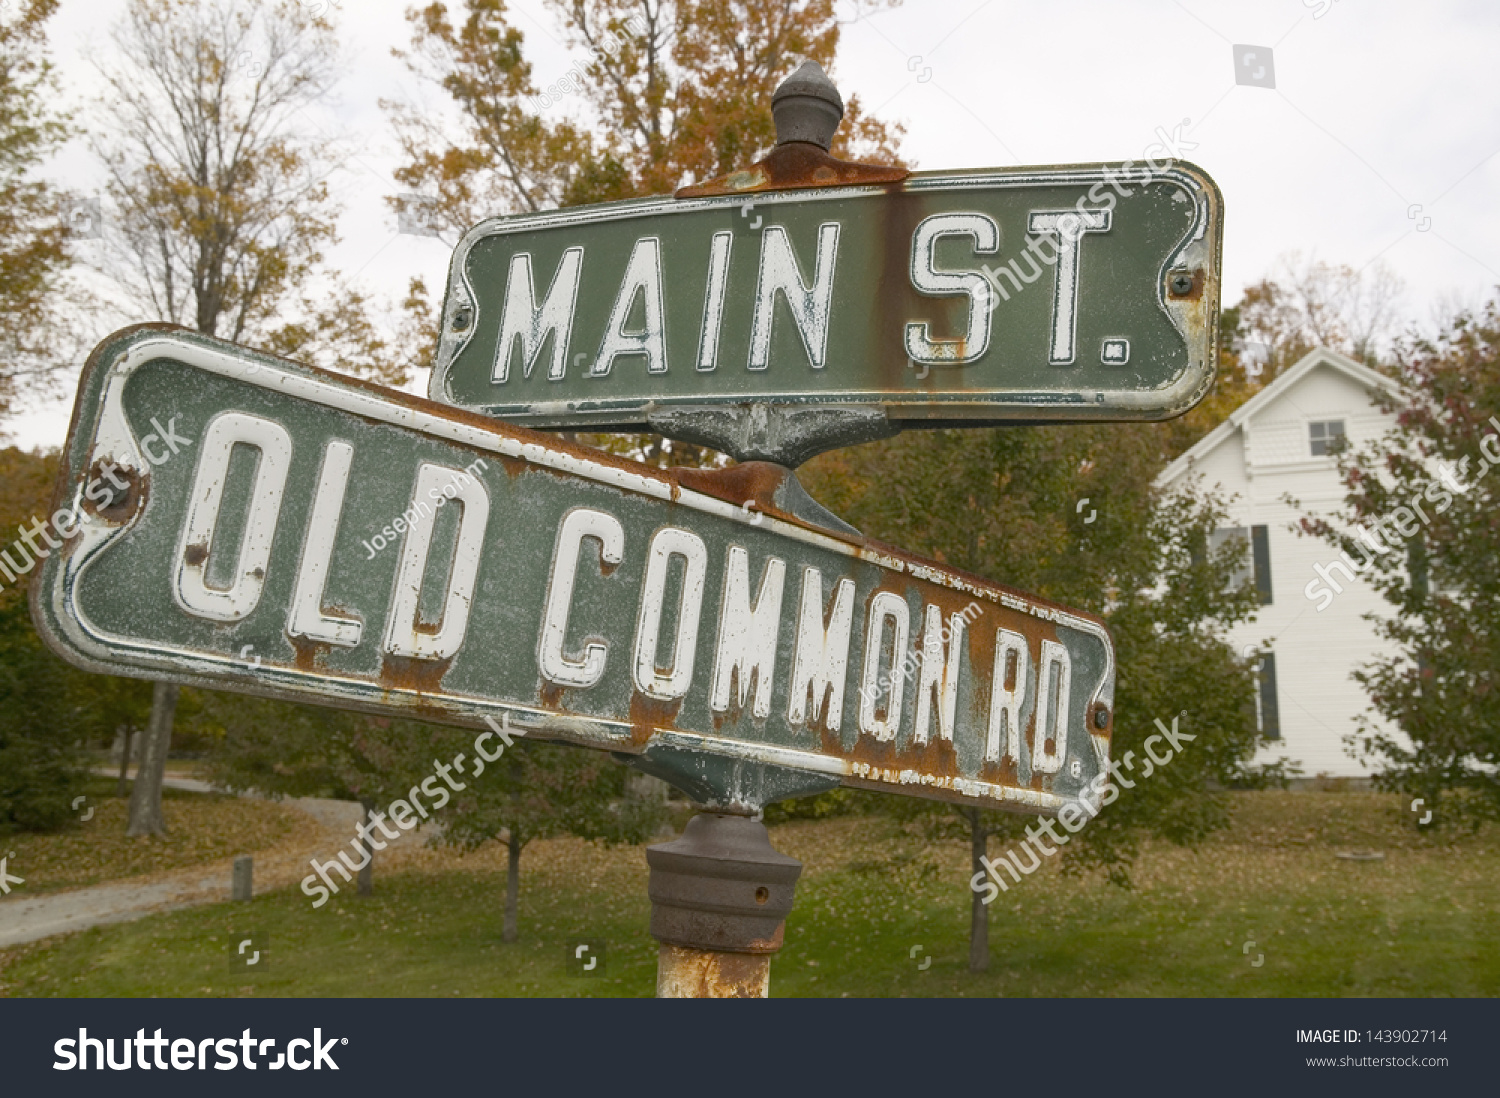 Main Street Old Common Road Sign Stock Photo